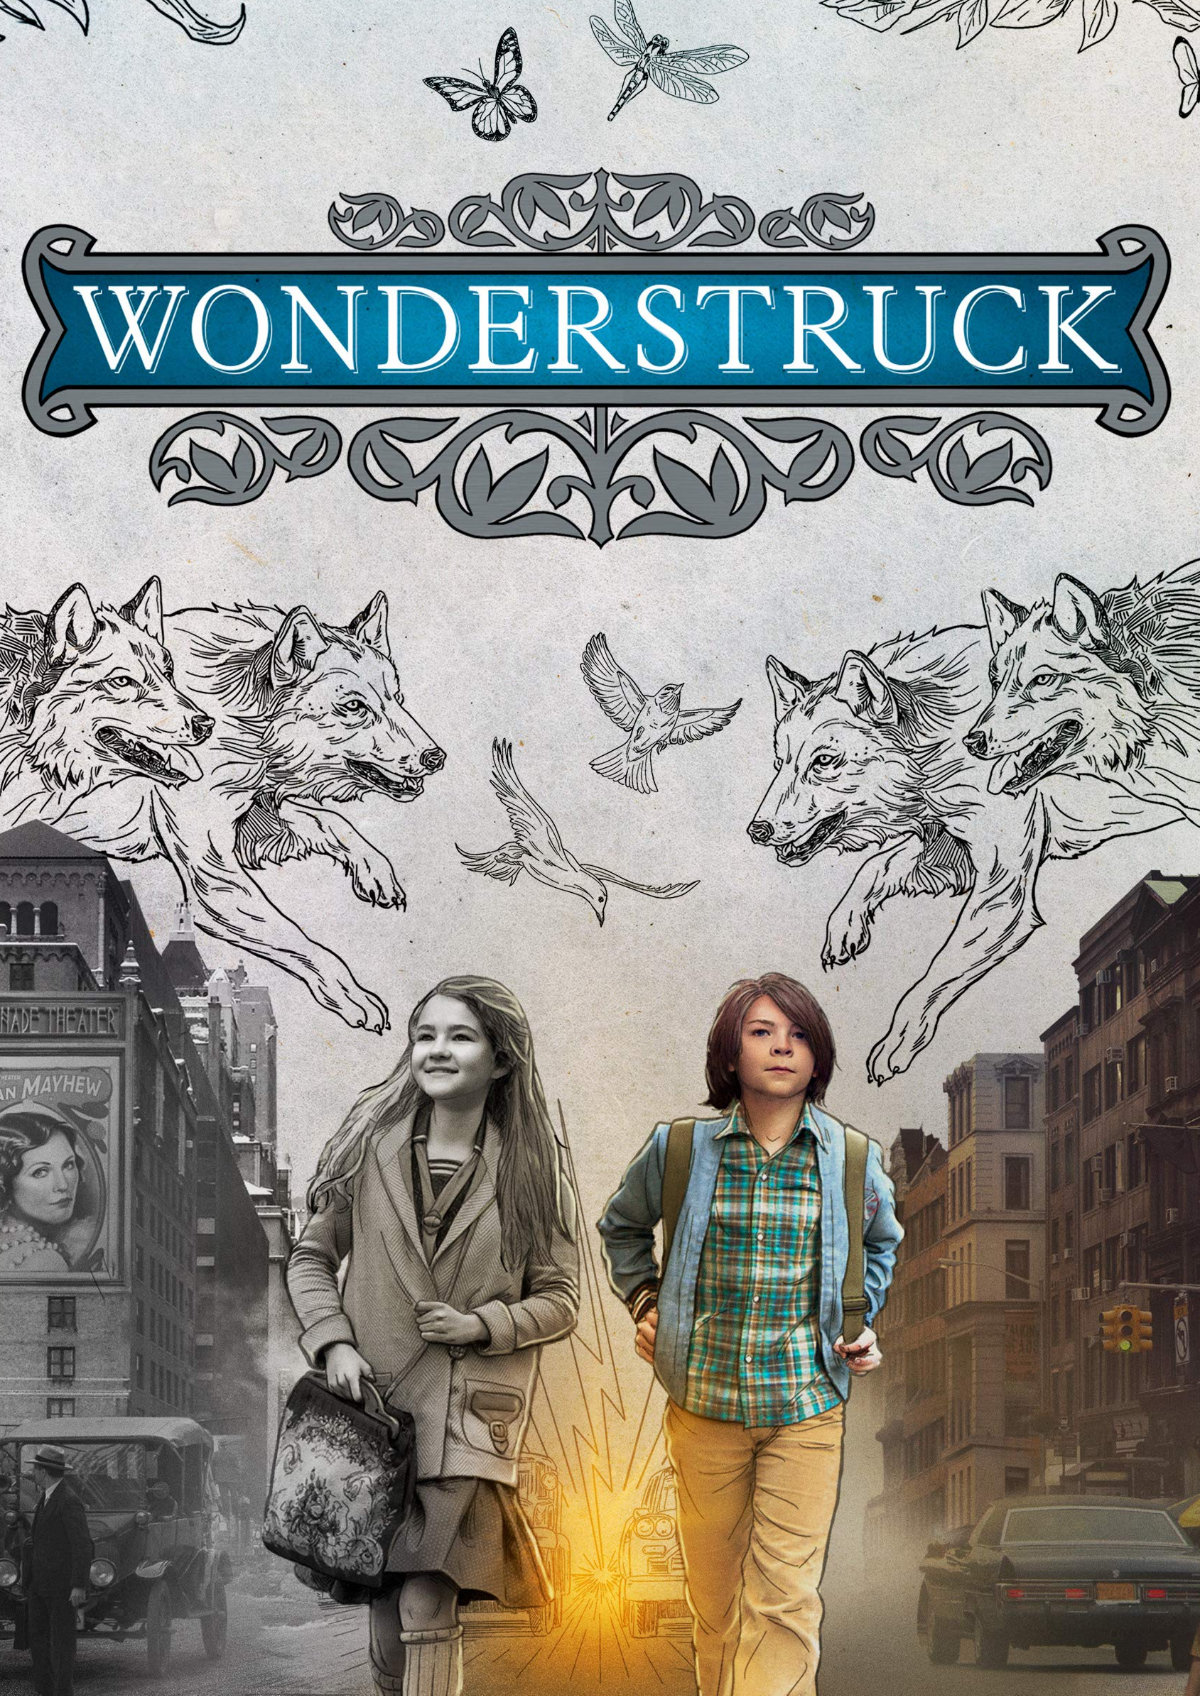 'Wonderstruck' movie poster